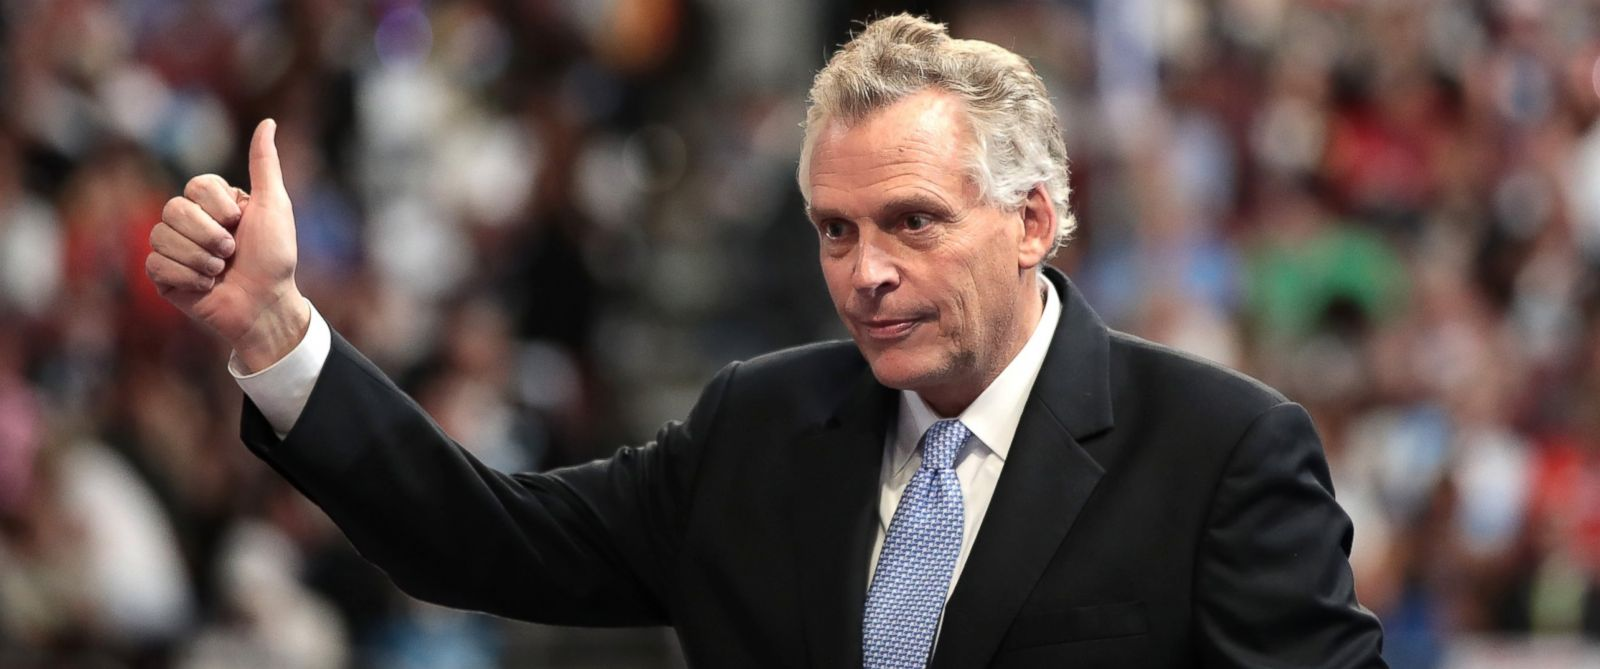 PHOTO: Gov. Terry McAuliffe delivers remarks on the second day of the Democratic National Convention at the Wells Fargo Center, July 26, 2016 in Philadelphia.